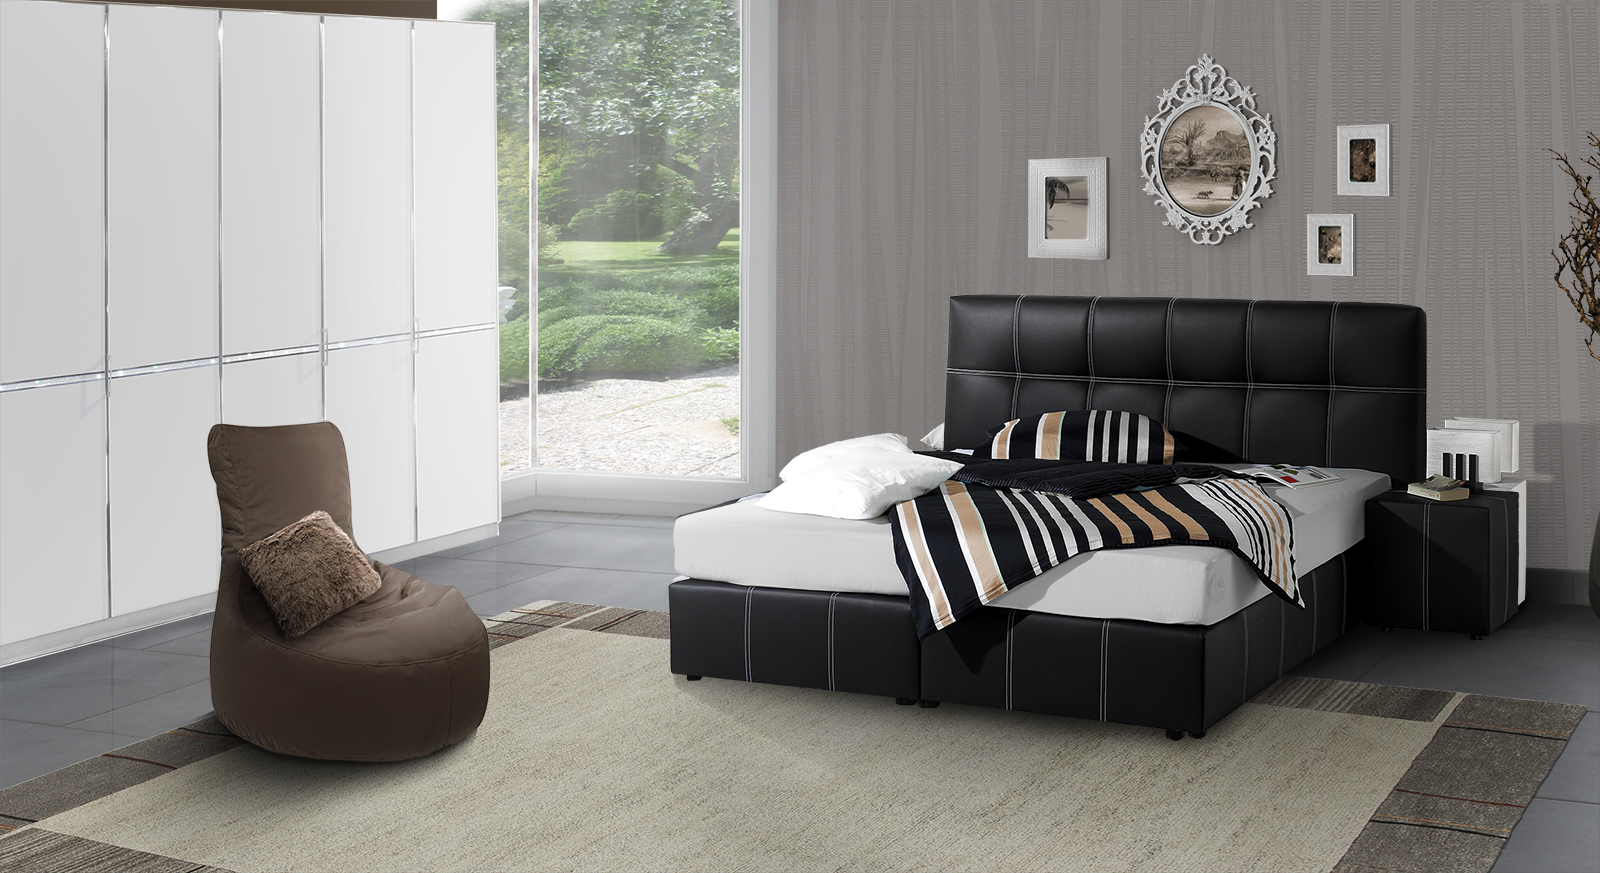 schlafzimmer mit boxspringbett. Black Bedroom Furniture Sets. Home Design Ideas